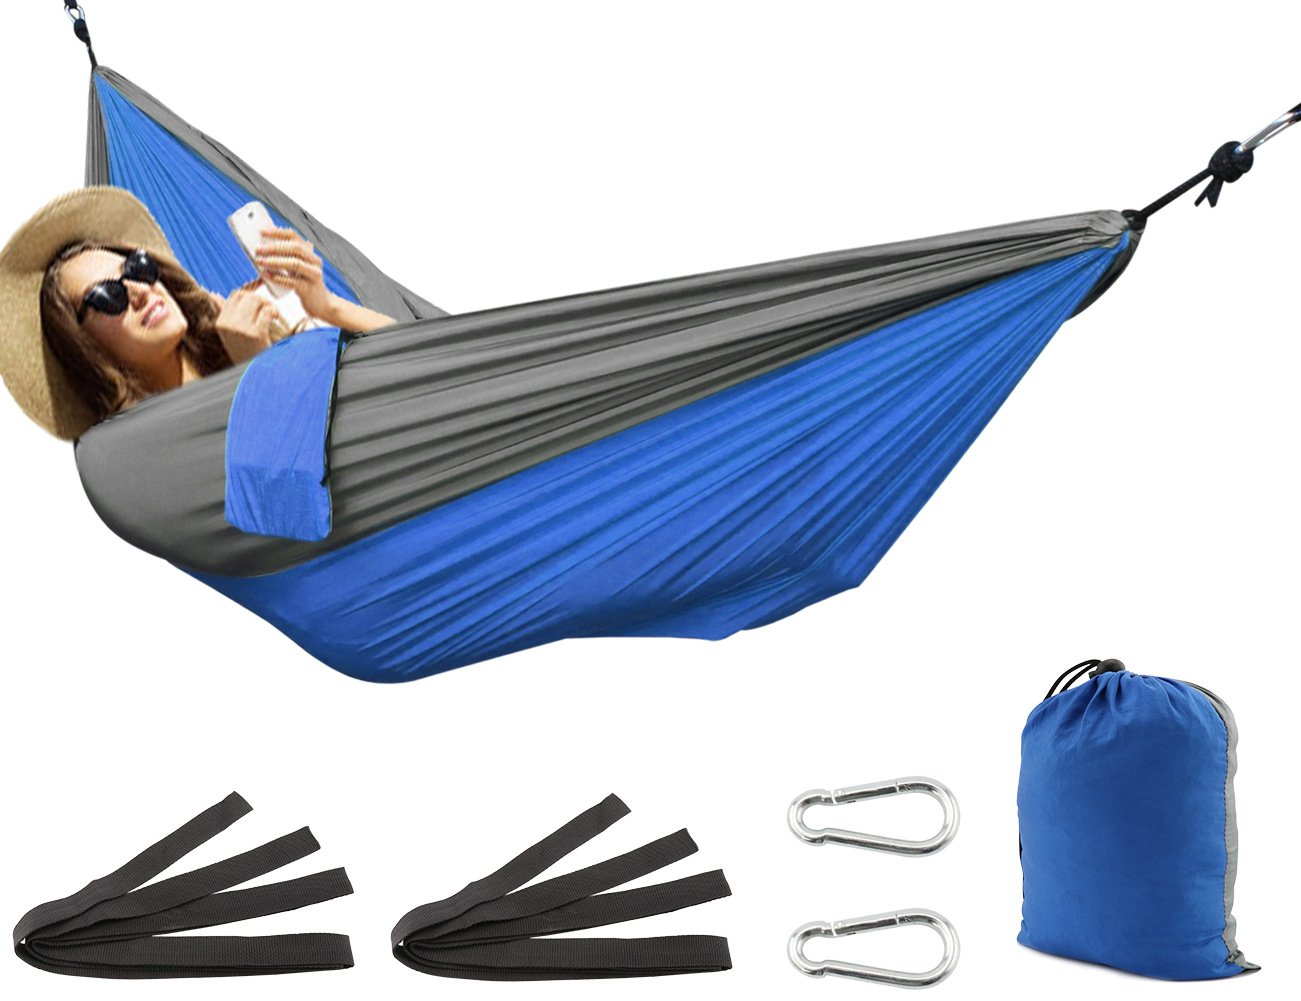 SueH Design Double Hammock, Lightweight Parachute Nylon Hammock for Hiking, Travel, Backpacking, Beach, Yard, Camping